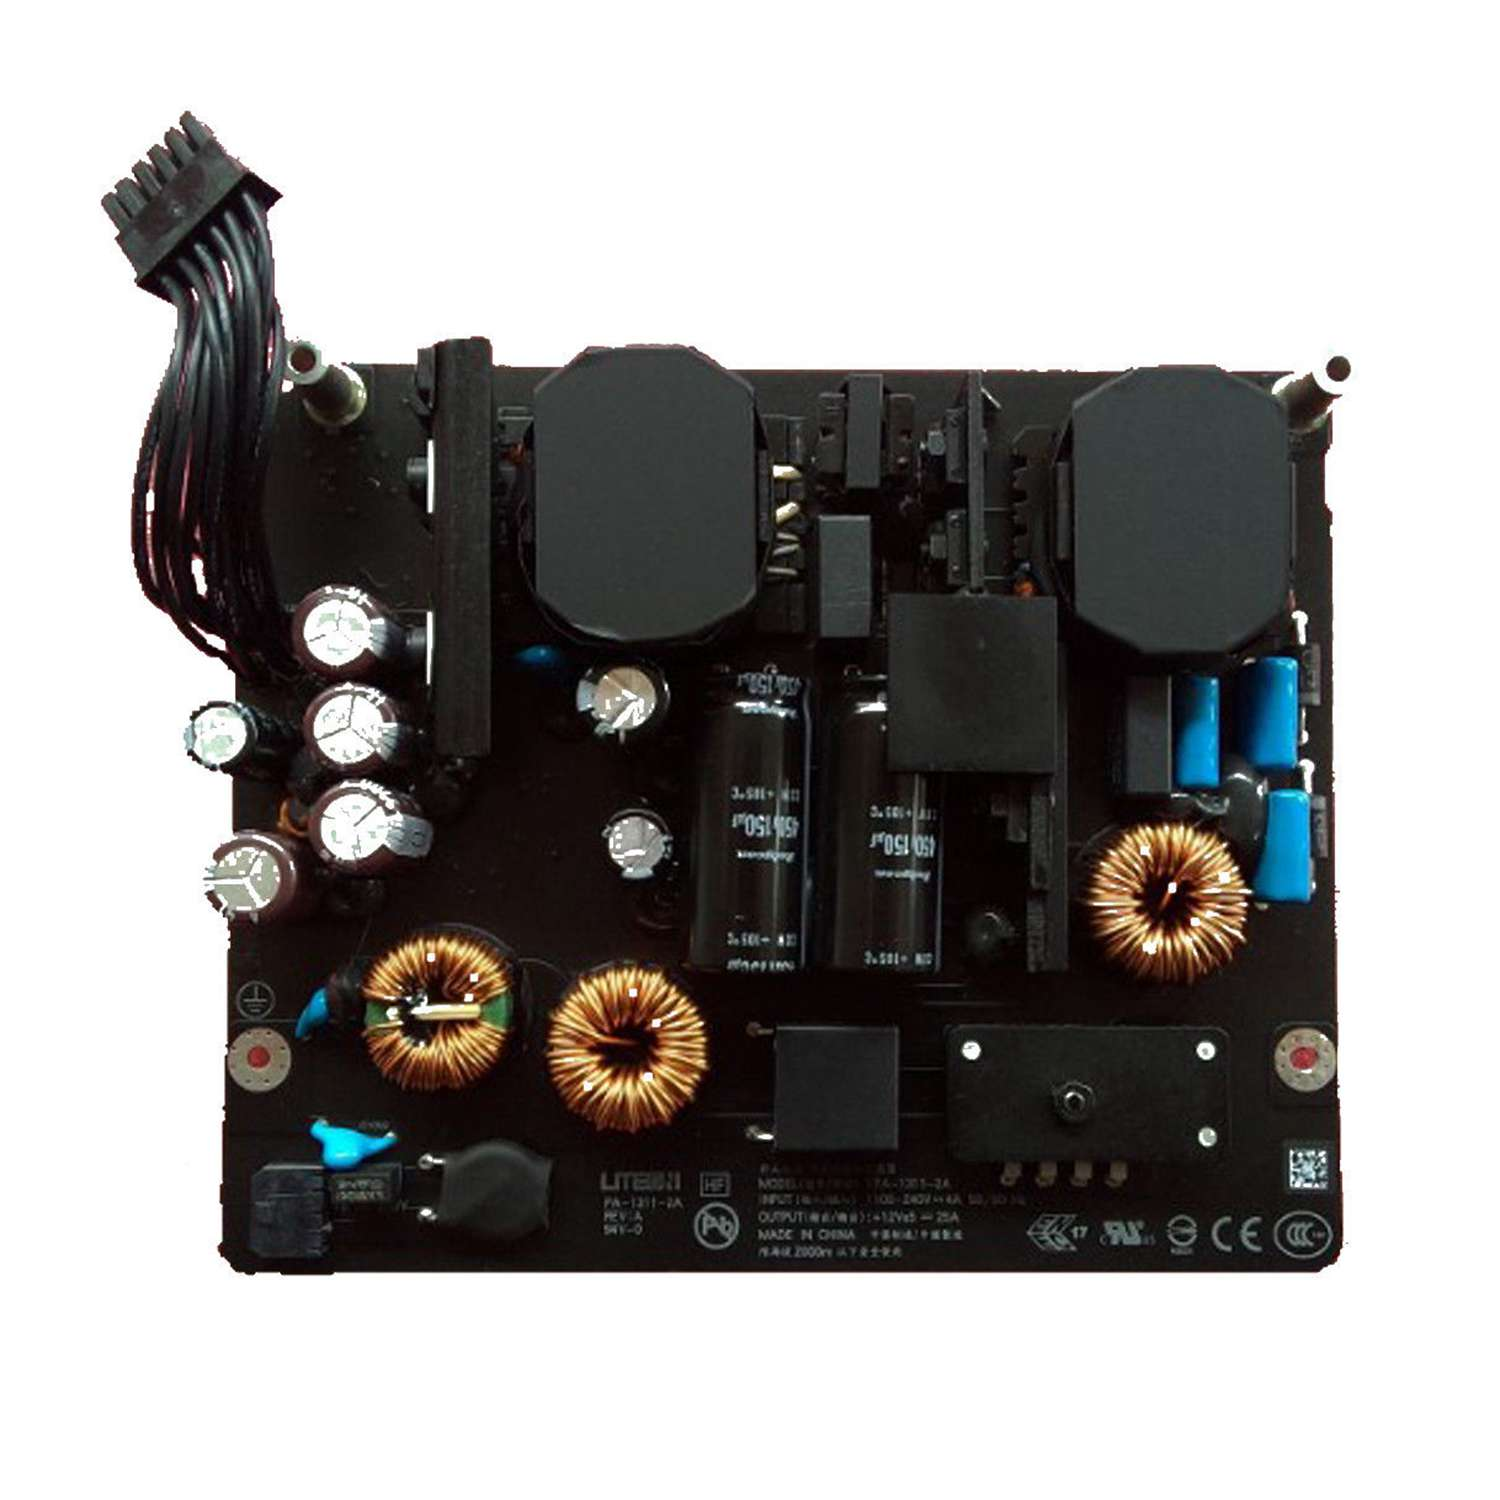 Oem Power Board For Apple Imac 27 inch A1419 Power Supply Late 2012 To 2014 Pa